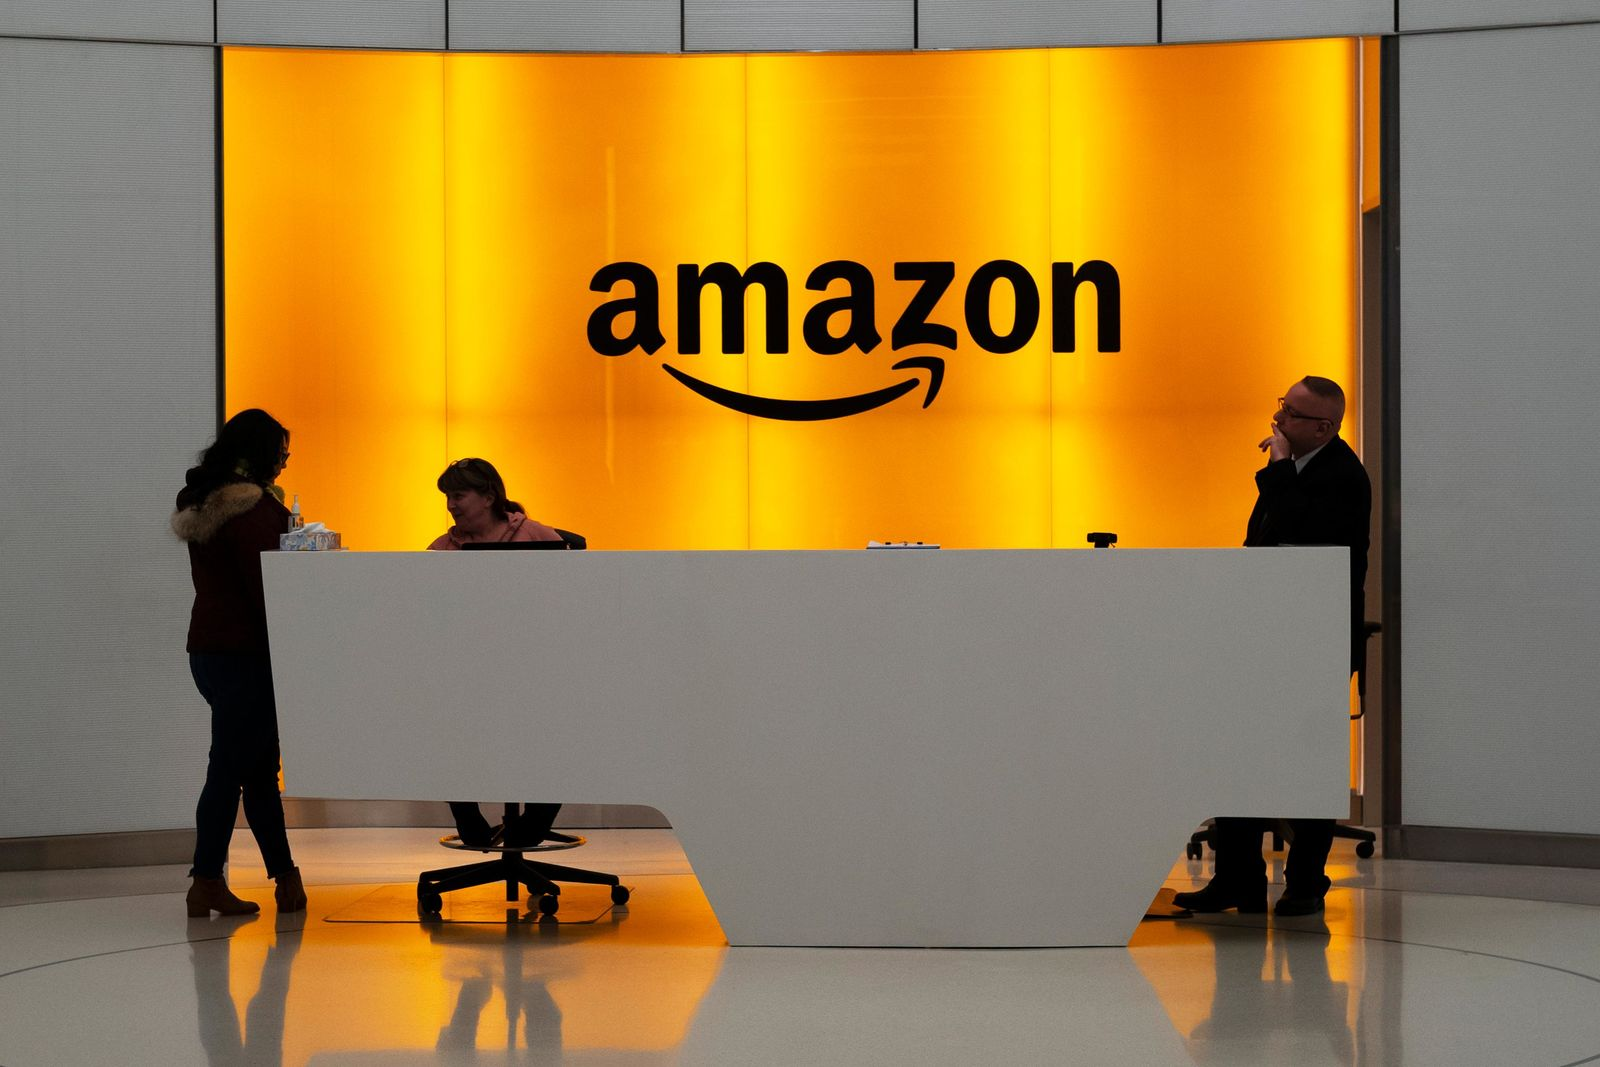 FILE - In this Feb. 14, 2019 file photo, people stand in the lobby for Amazon offices in New York. (AP Photo/Mark Lennihan, File)